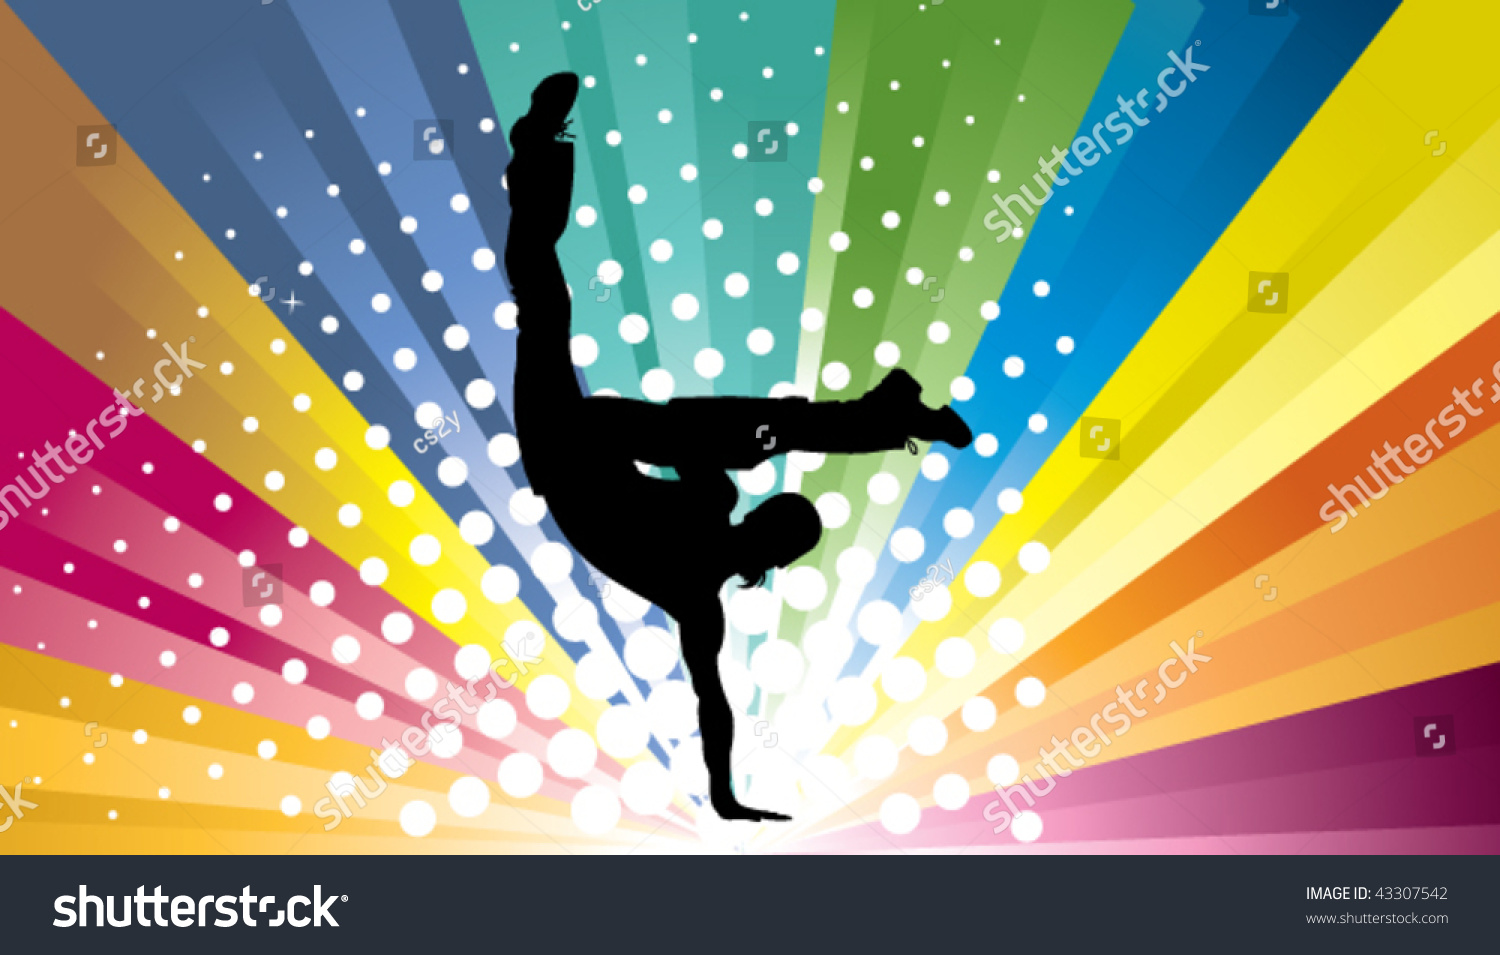 Silhouette Dance Music Abstract Background: Abstract Colorful Background Street Dance Stock Vector